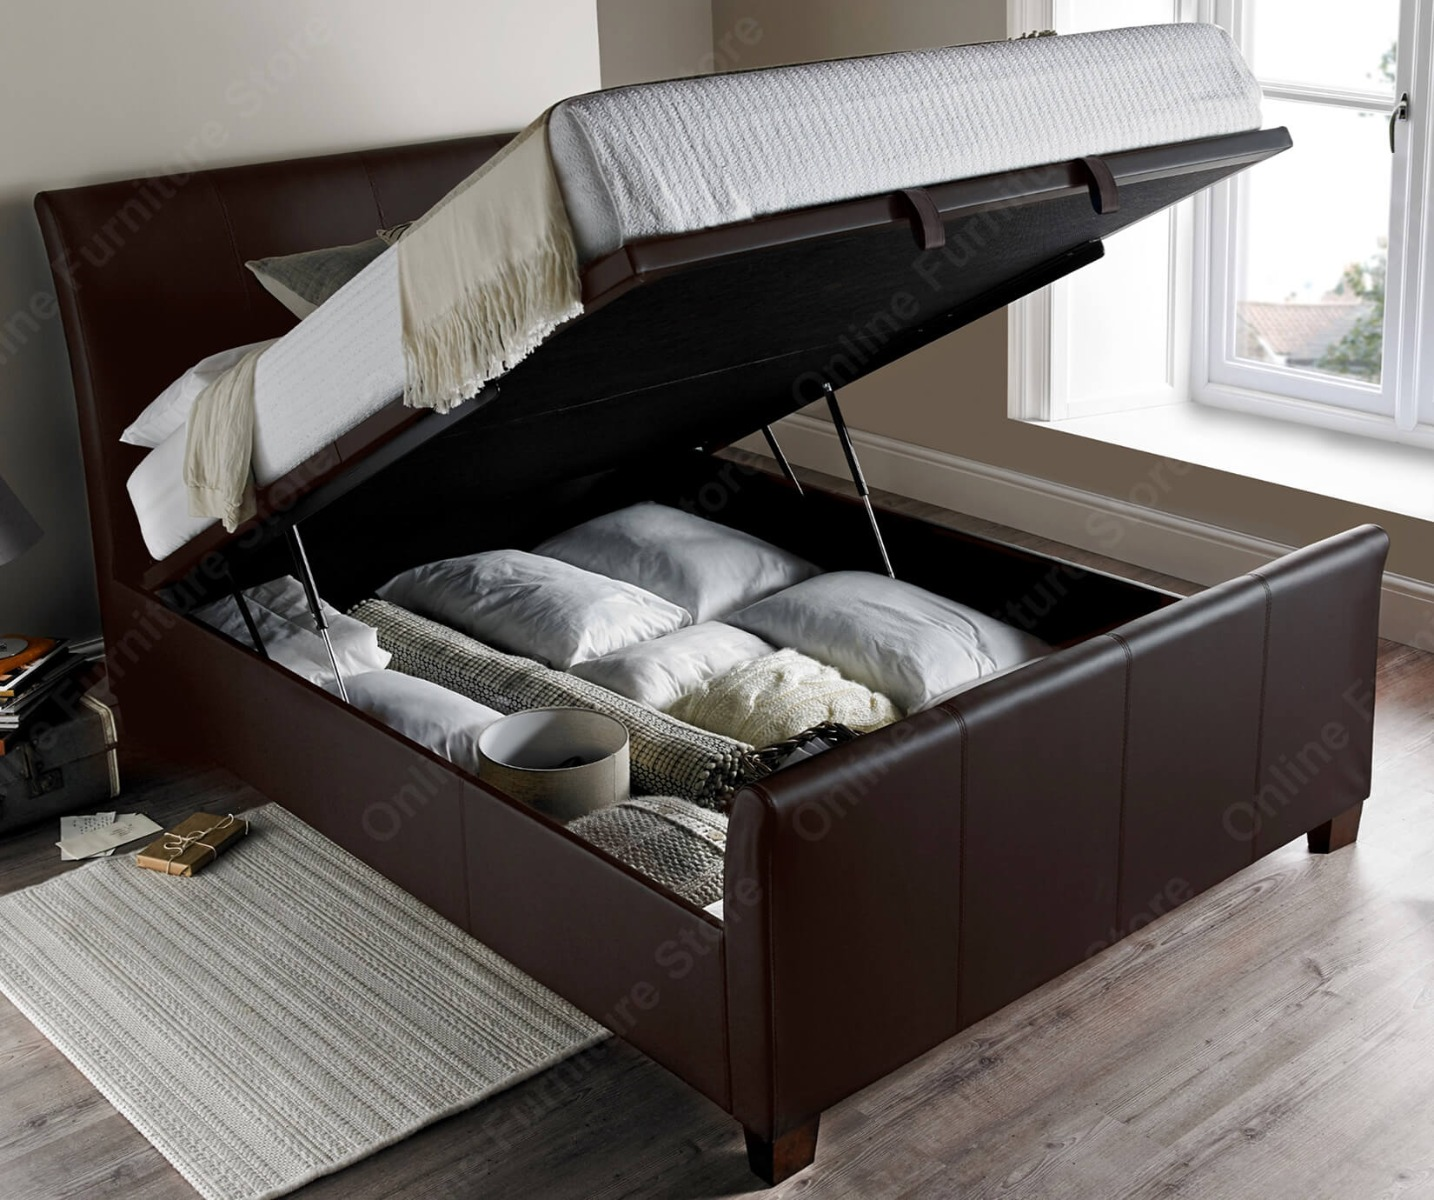 Kaydian Beds Allendale Brown Leather Ottoman Bed Frame